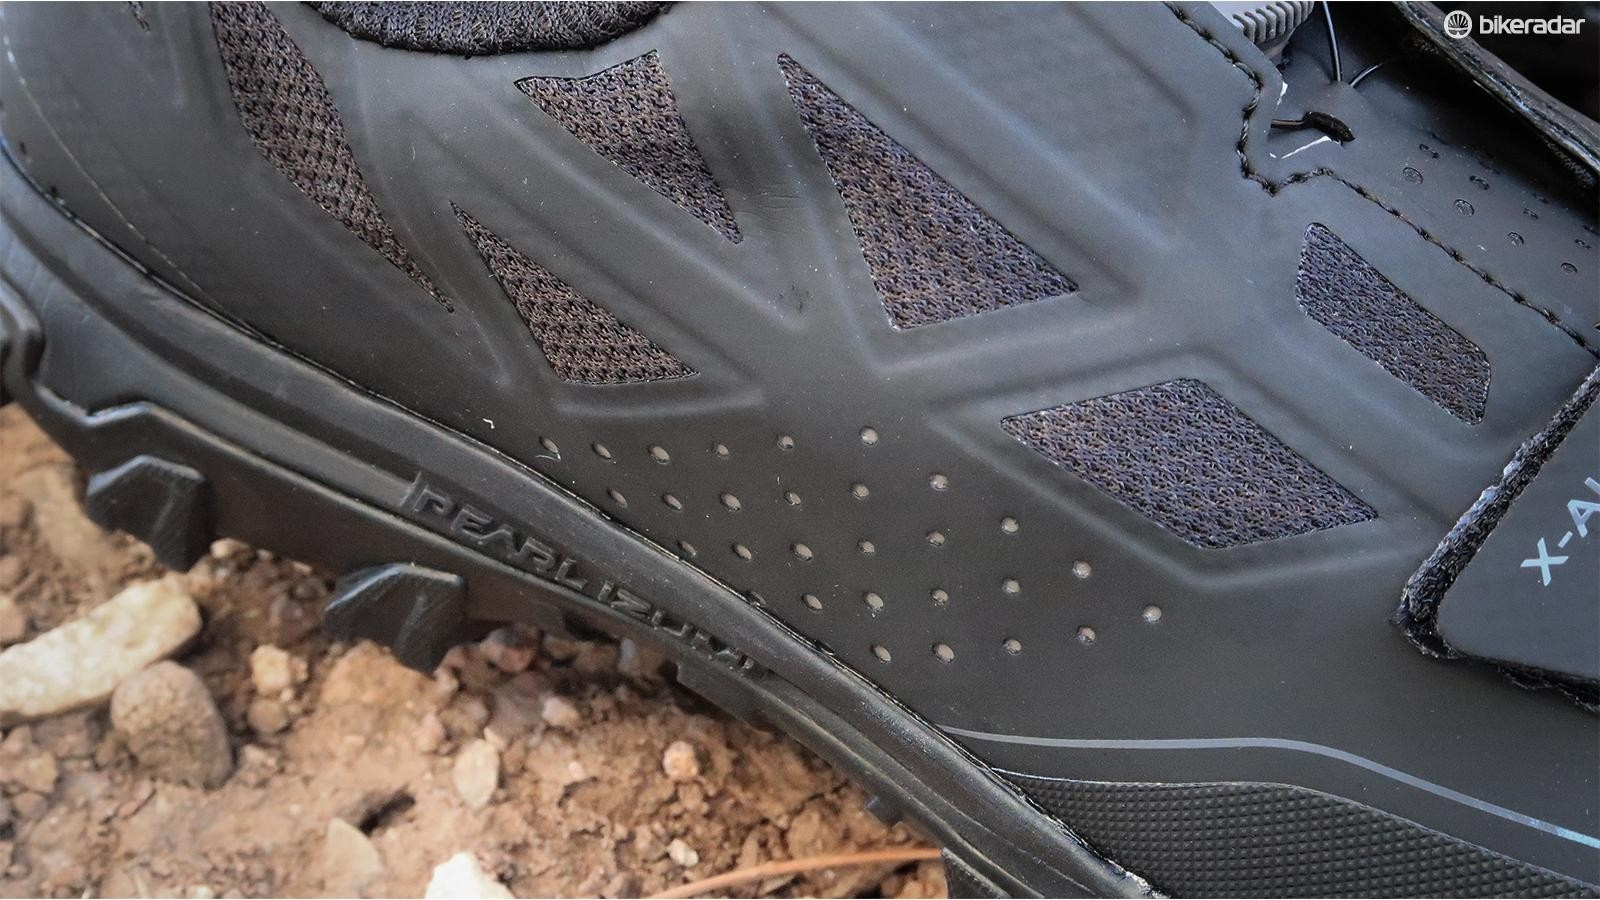 The seamless upper has plenty of mesh vents and perforations